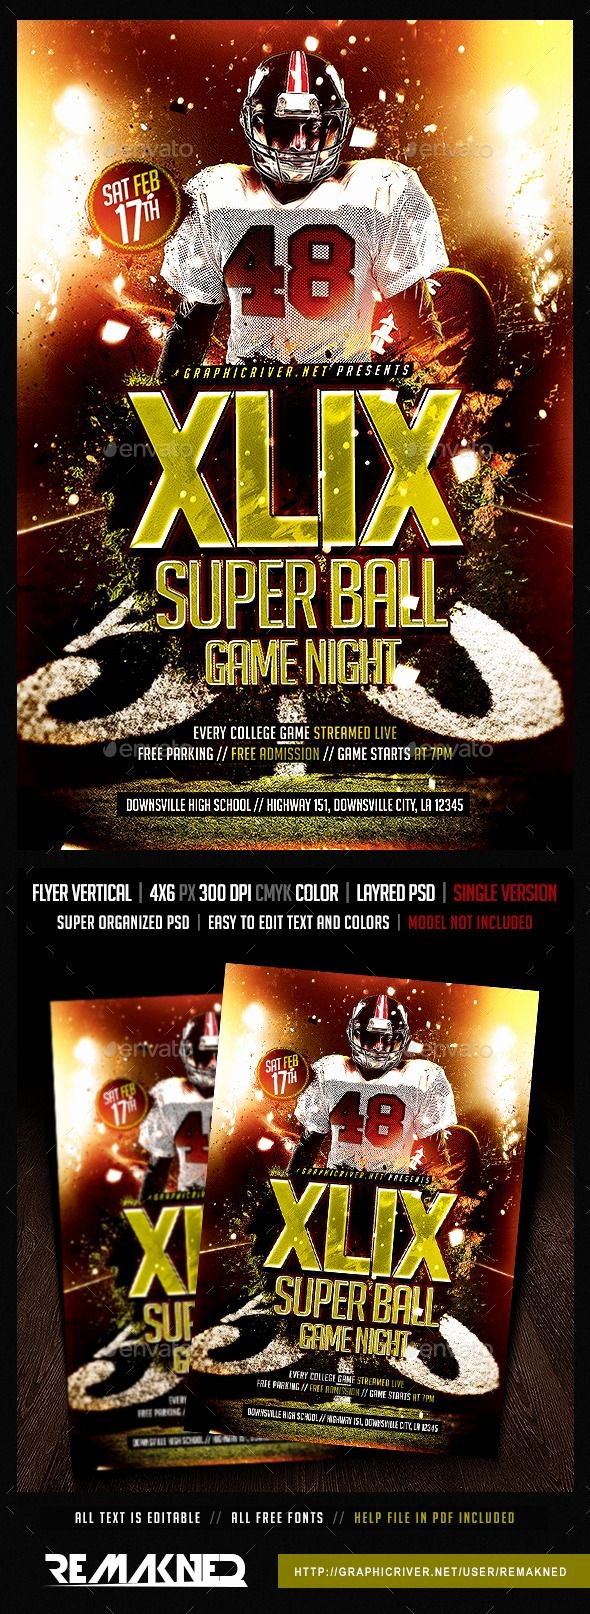 Game Night Flyer Template Unique 92 Best Flyers Design Template Psd Images On Pinterest